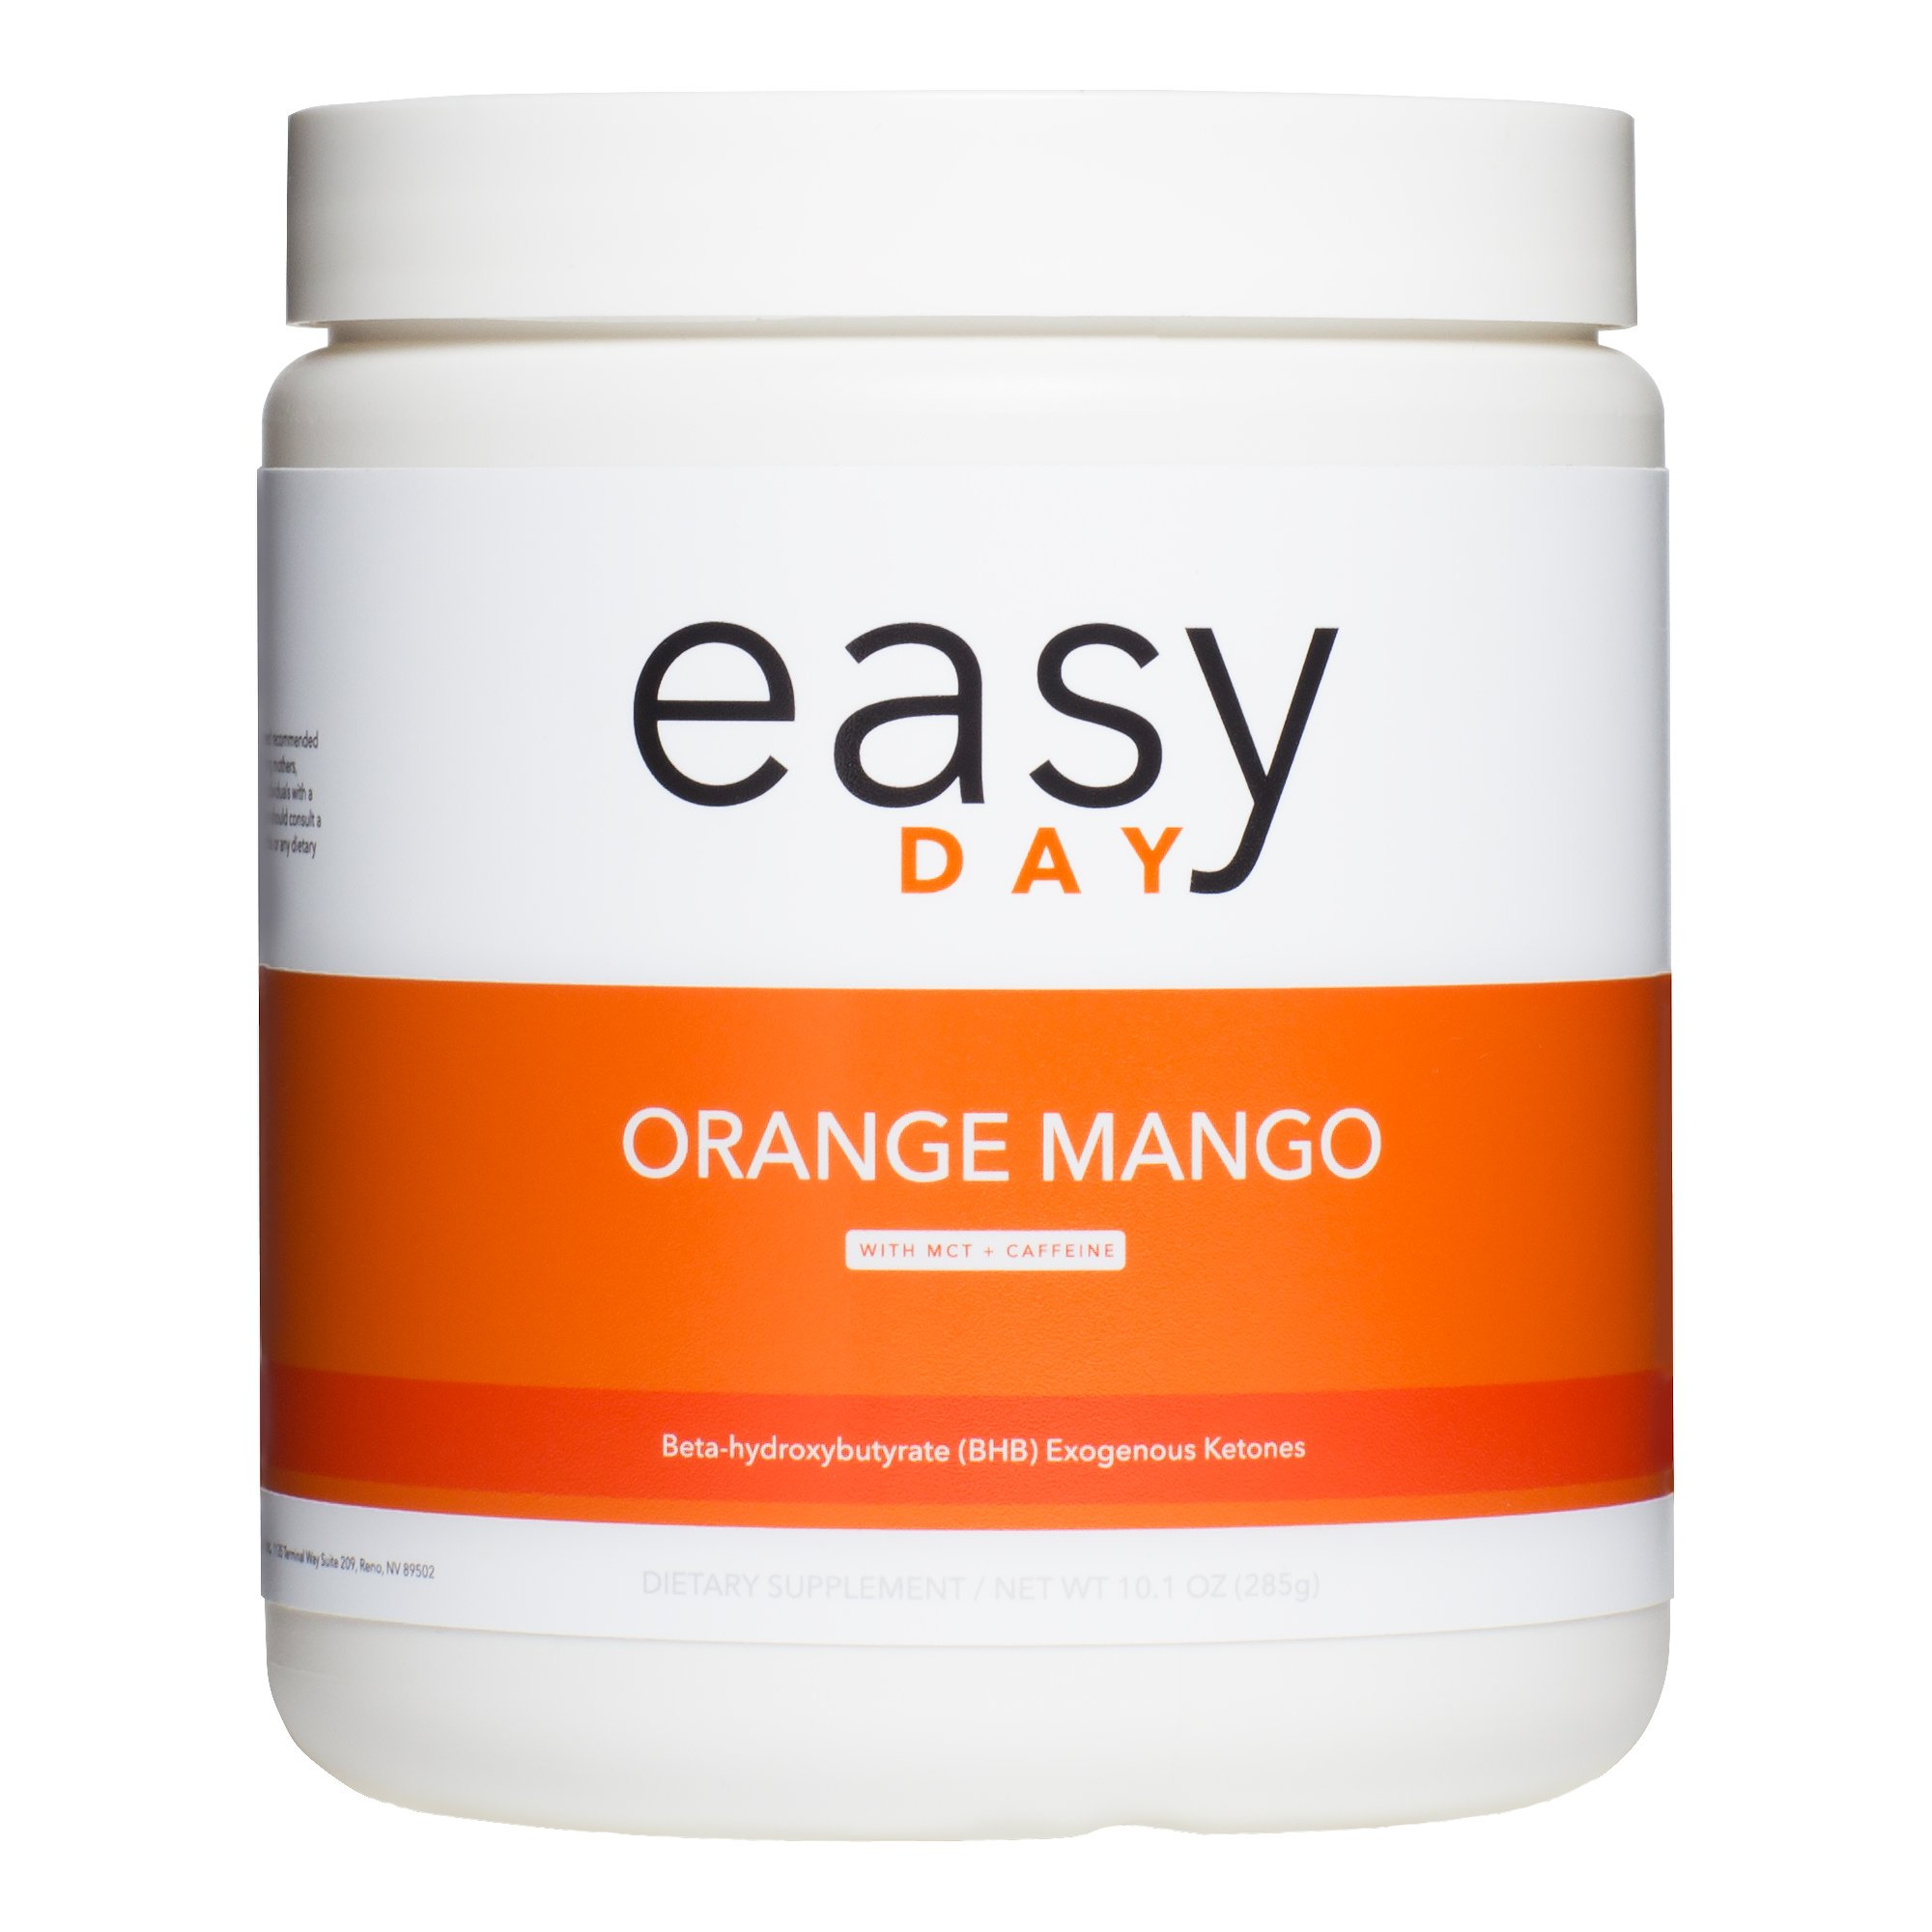 Easy Day Keto- BHB Salts + MCT Oil + Caffeine. Exogenous Ketone Supplement. Perfect To Enter and Maintain Ketosis. Increase Energy, Focus & Burn Fat 10.1 oz. (Orange Mango)